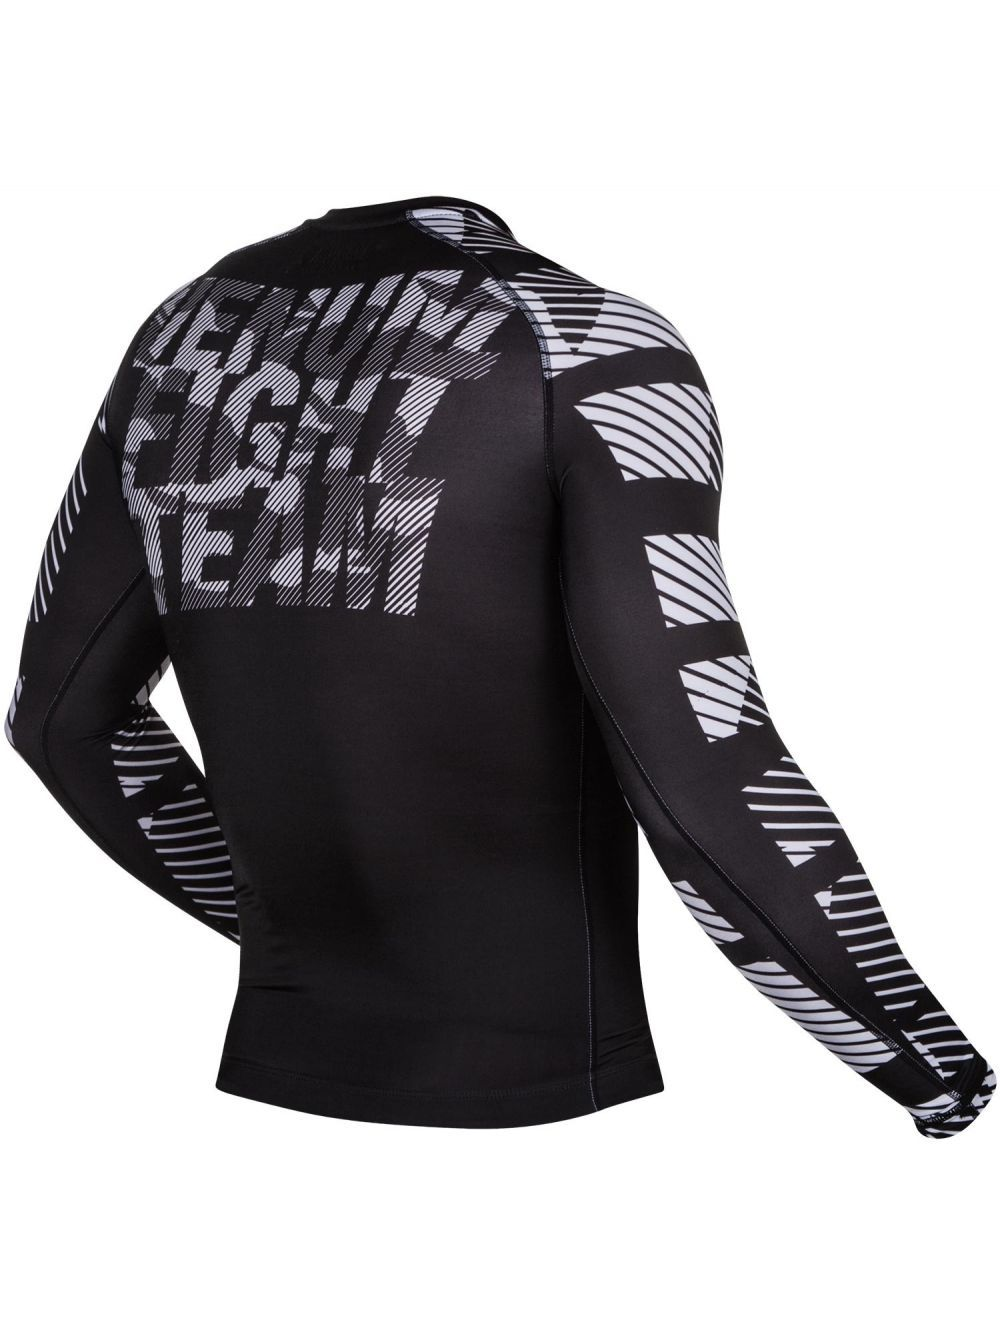 Рашгард Venum Speed Camo ls Black